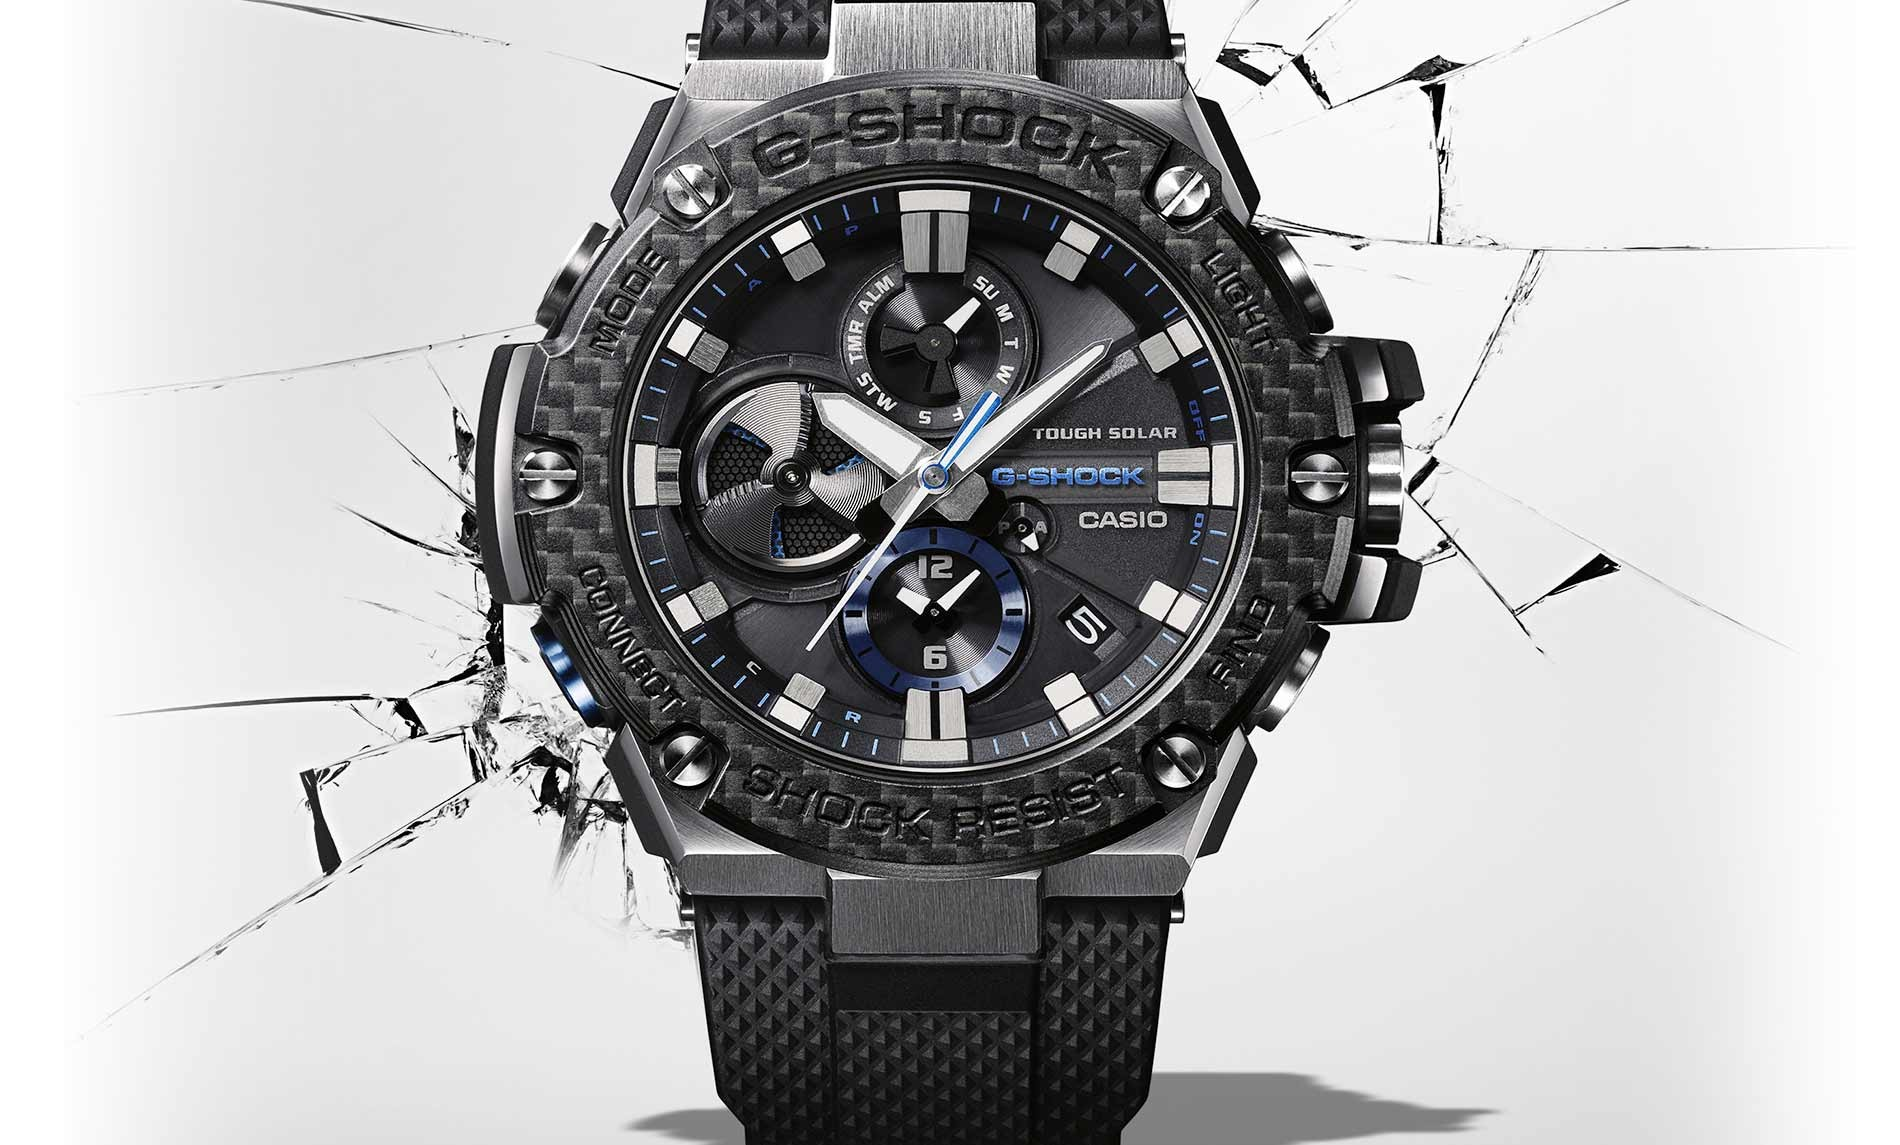 GShock GSteel Tough Solar